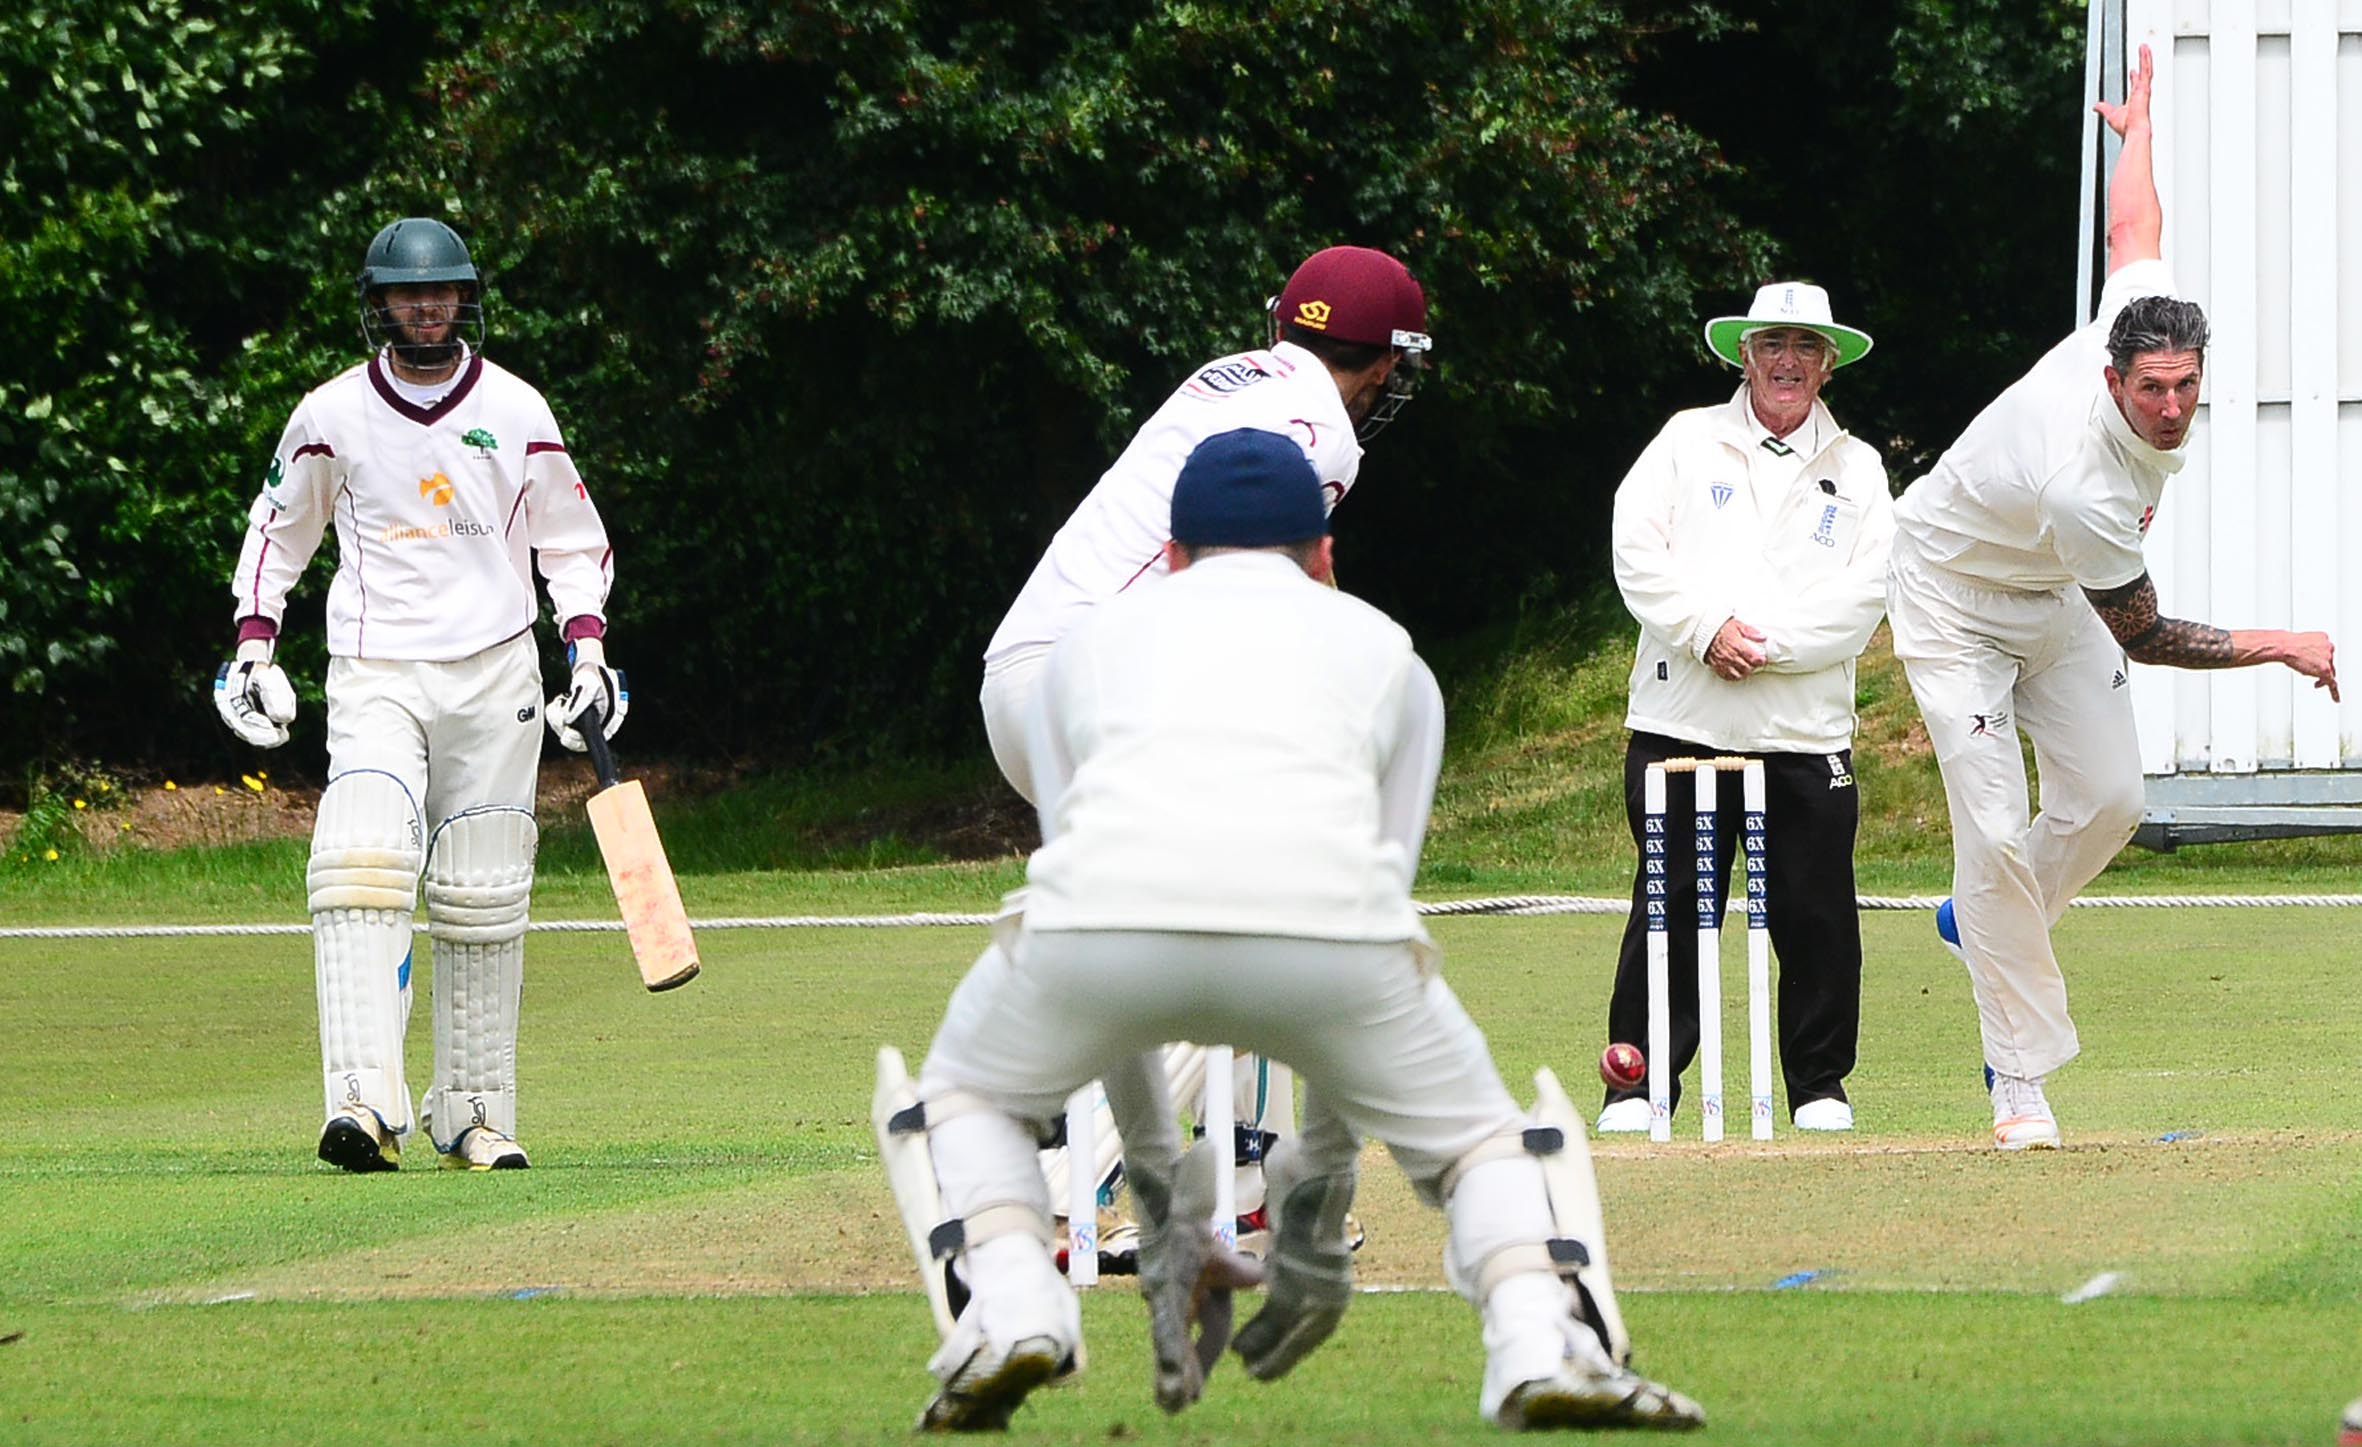 VICTORY: Ben Phillips (above, bowling) helped Taunton to a three-wicket win against Shapwick & Polden on Saturday